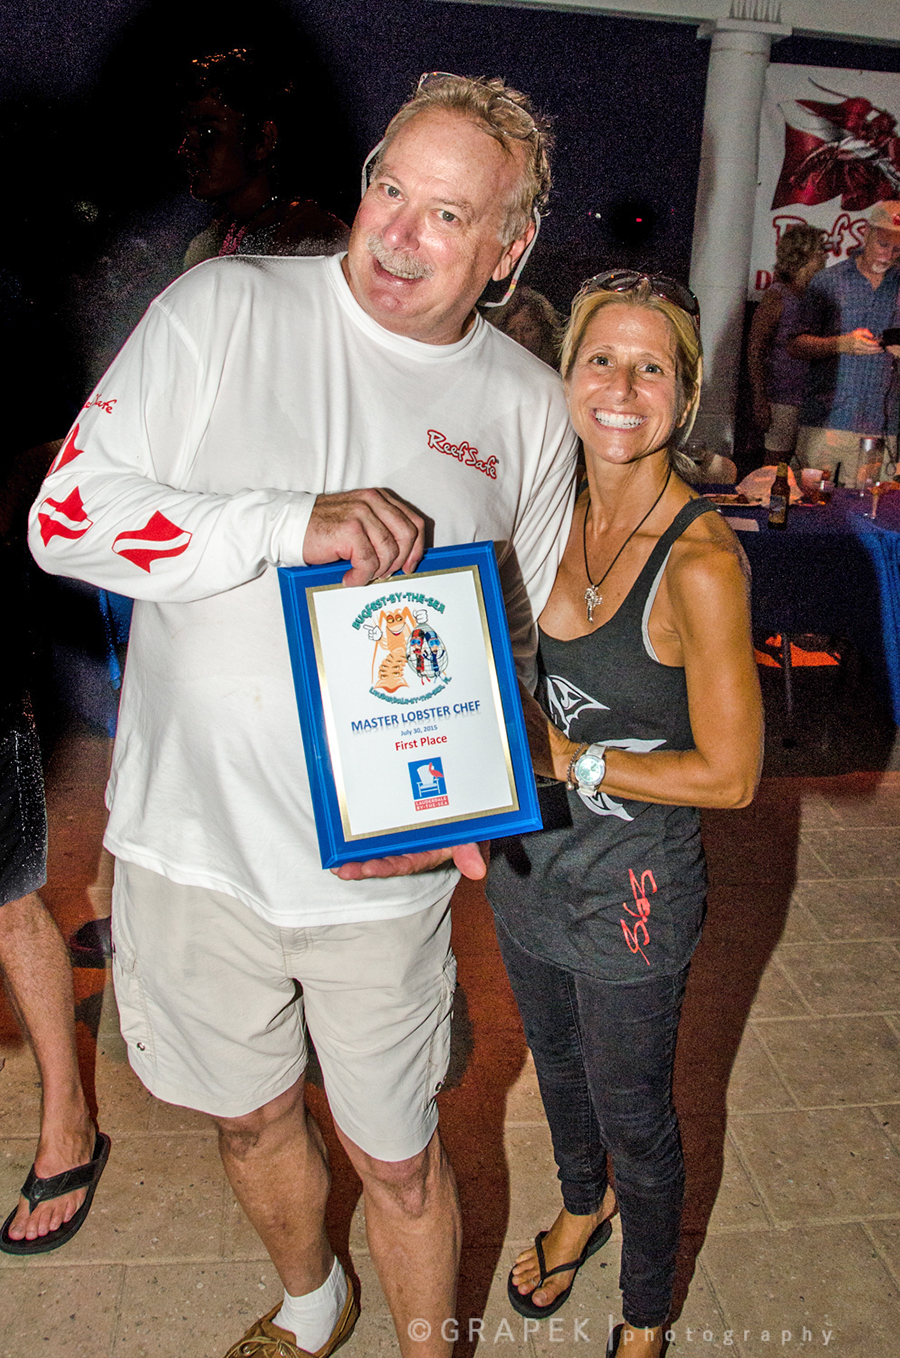 Bugfest 2015_20150730 - awards party_GPO_20150730_9806_bugfest_2015_LR_WM